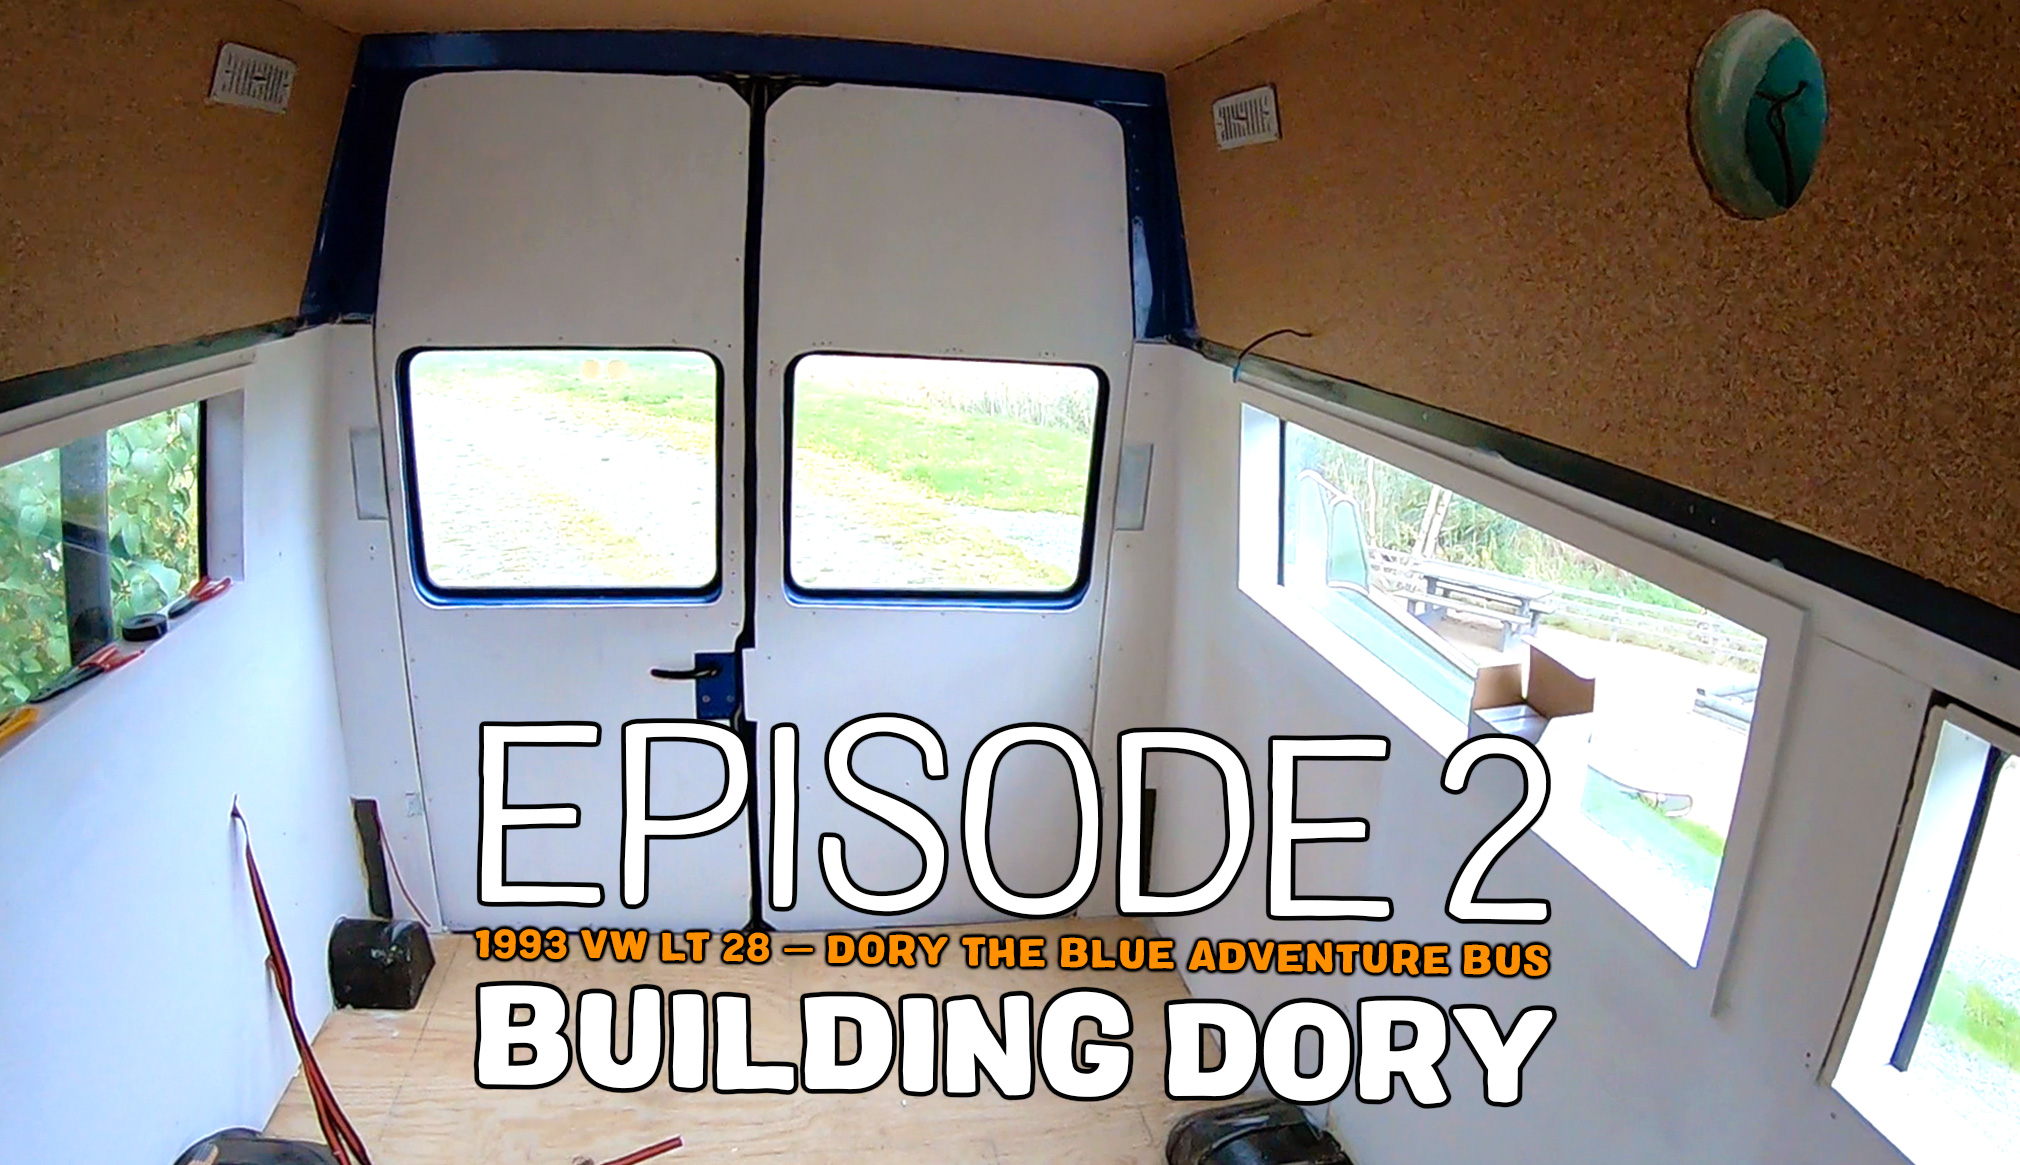 Building Dory episode 2